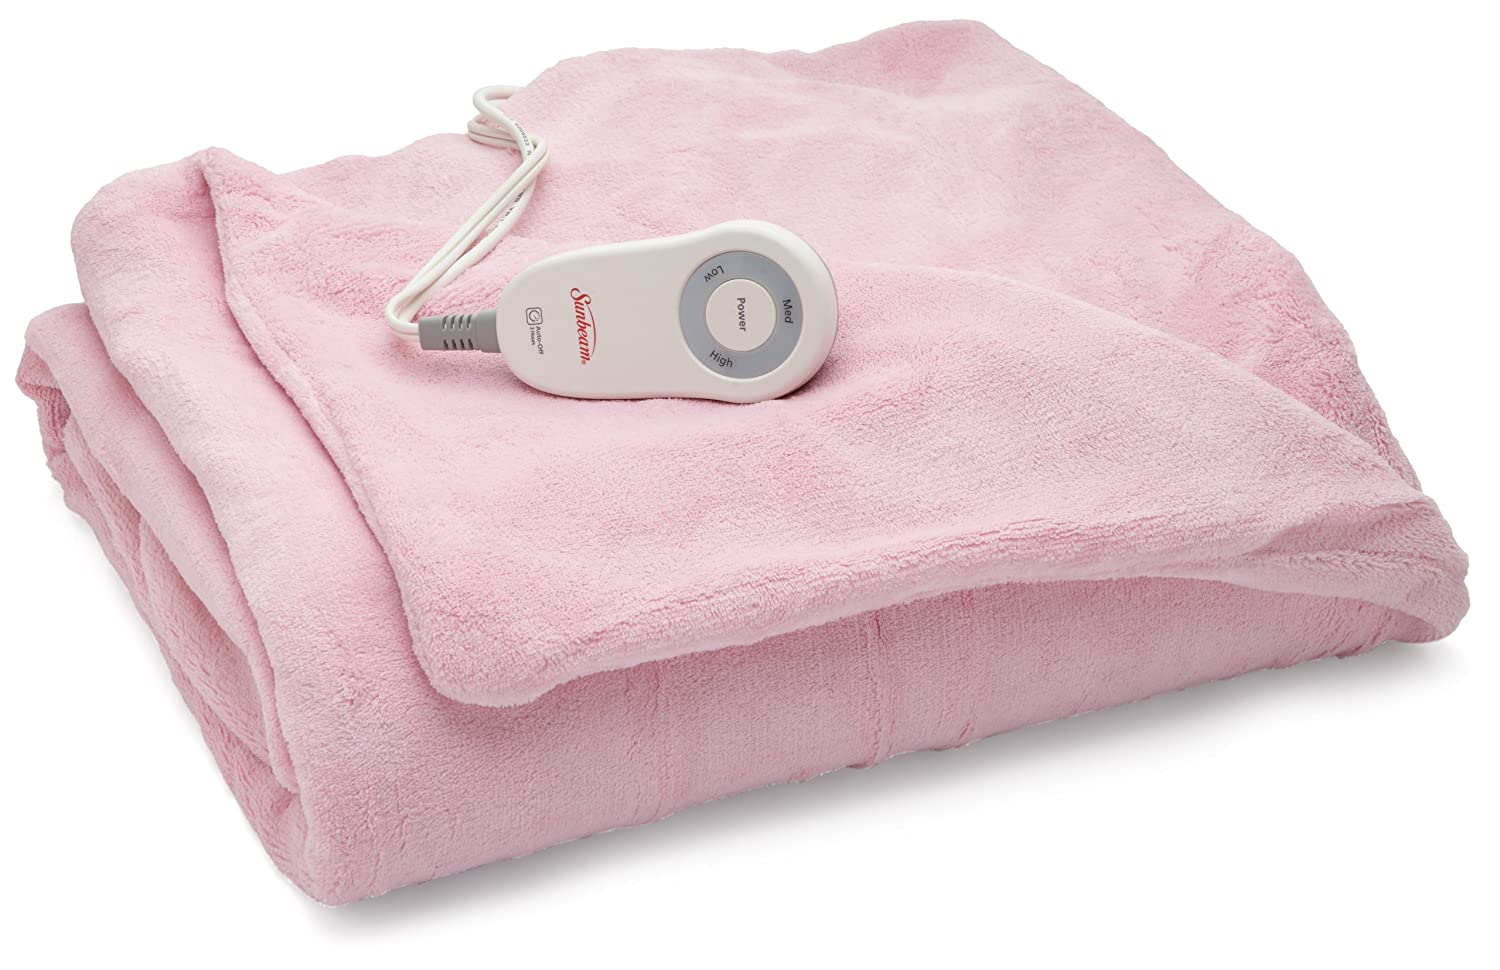 walmart throw perky sunbeam quilted mattress reviews automatic sparkling electric blanket queen biddeford size captivating heated auto h dw micro blankets pad